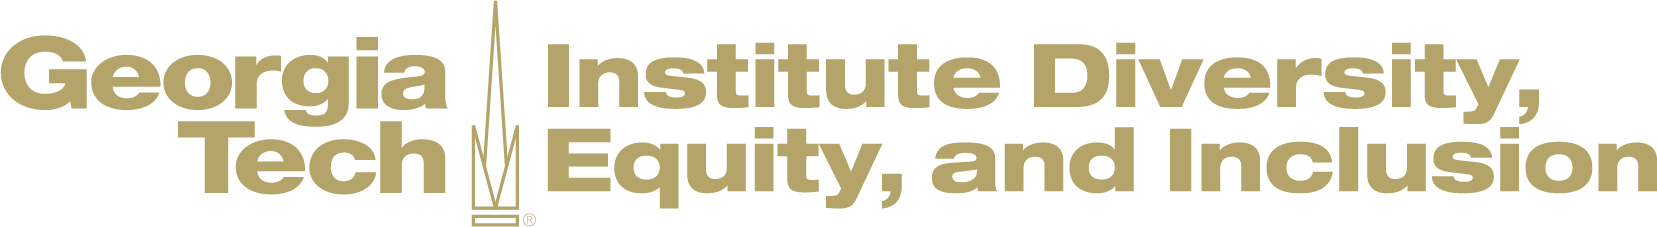 Institute Diversity is now Institute Diversity, Equity, and Inclusion